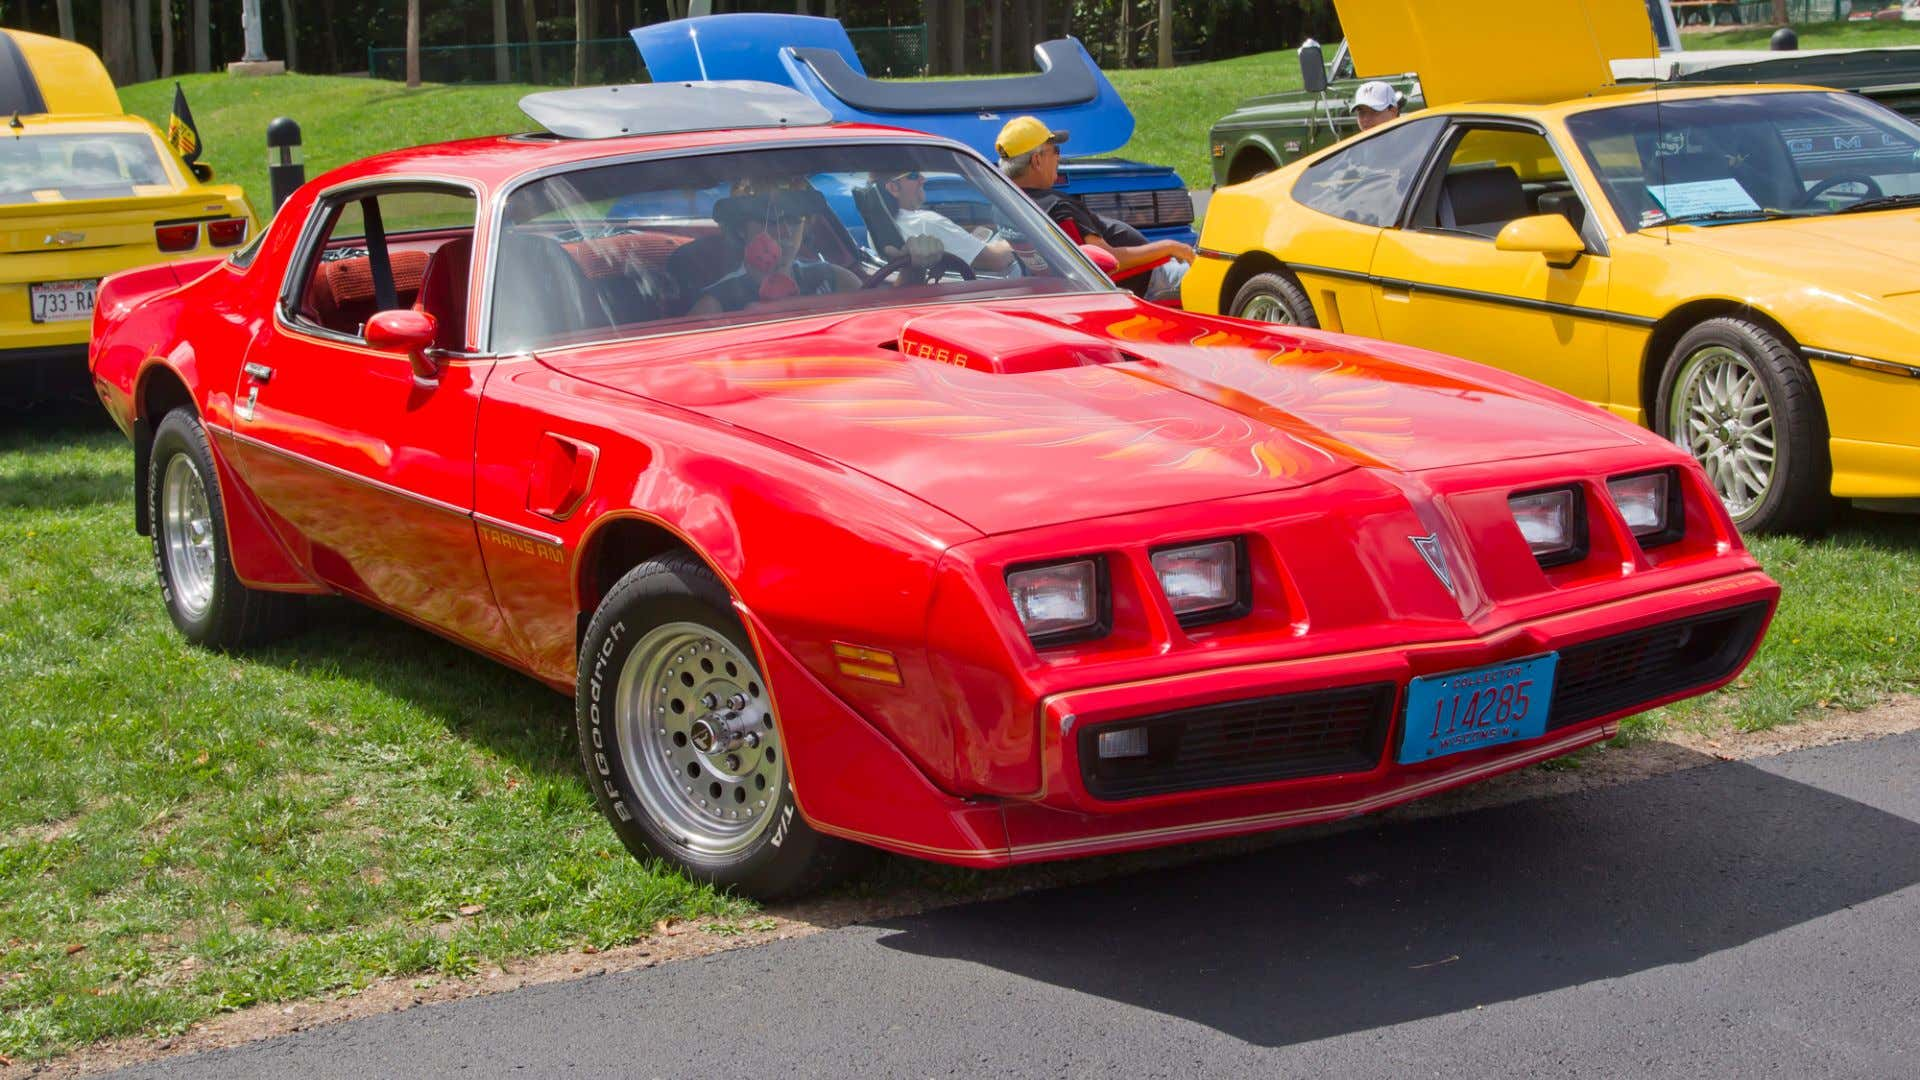 A perfectly red Pontiac Trans-Am fire chicken.